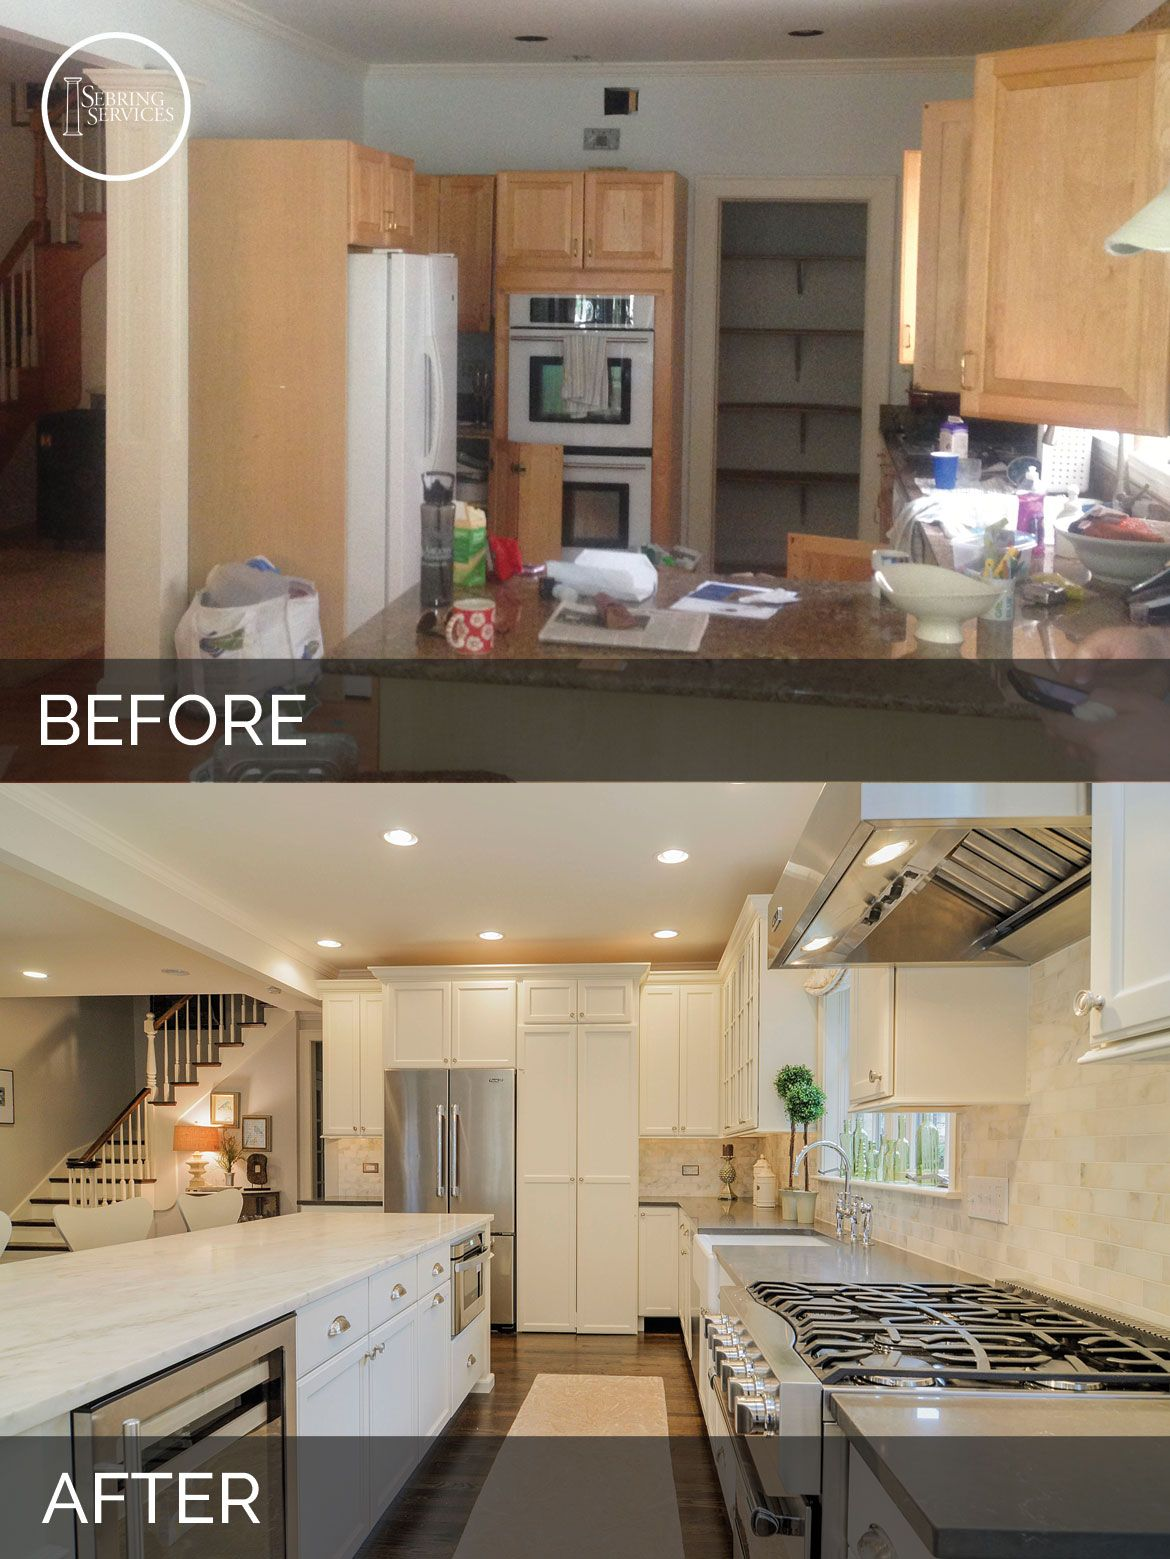 Ben Ellen S Kitchen Before After Home Remodeling Contractors Sebring Services